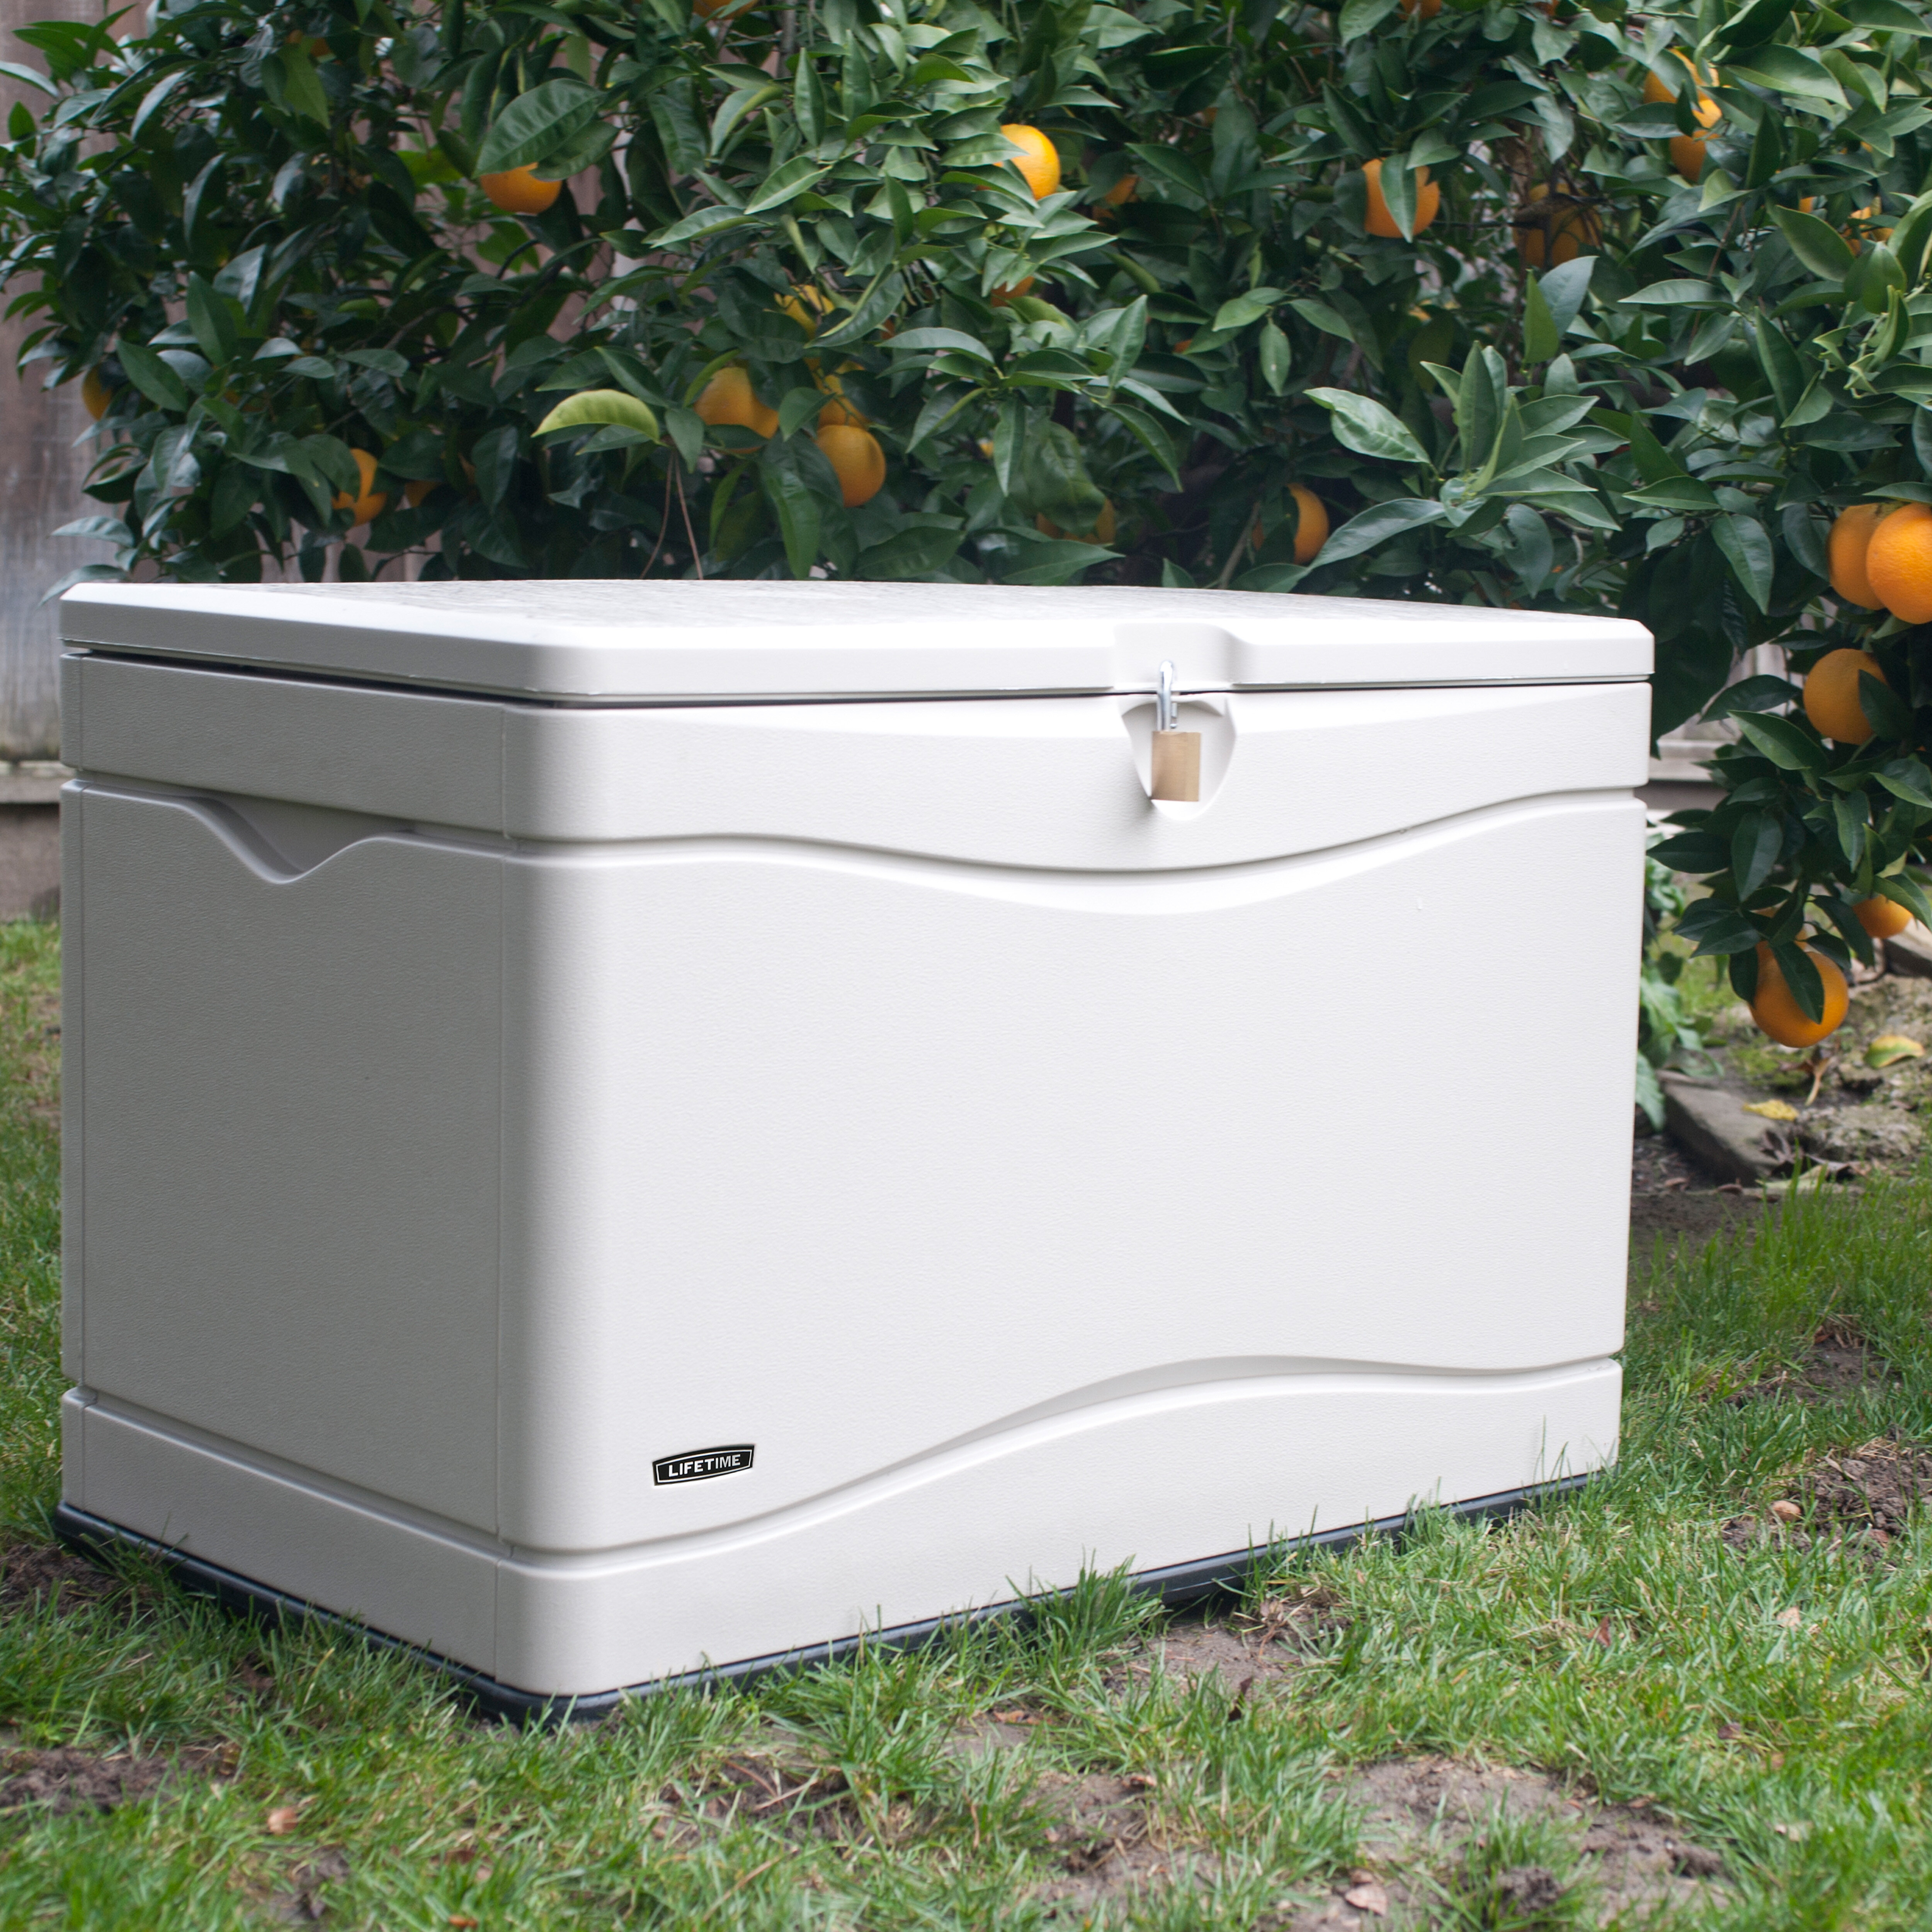 & Lifetime Outdoor Storage 80 Gallon Plastic Deck Box u0026 Reviews | Wayfair